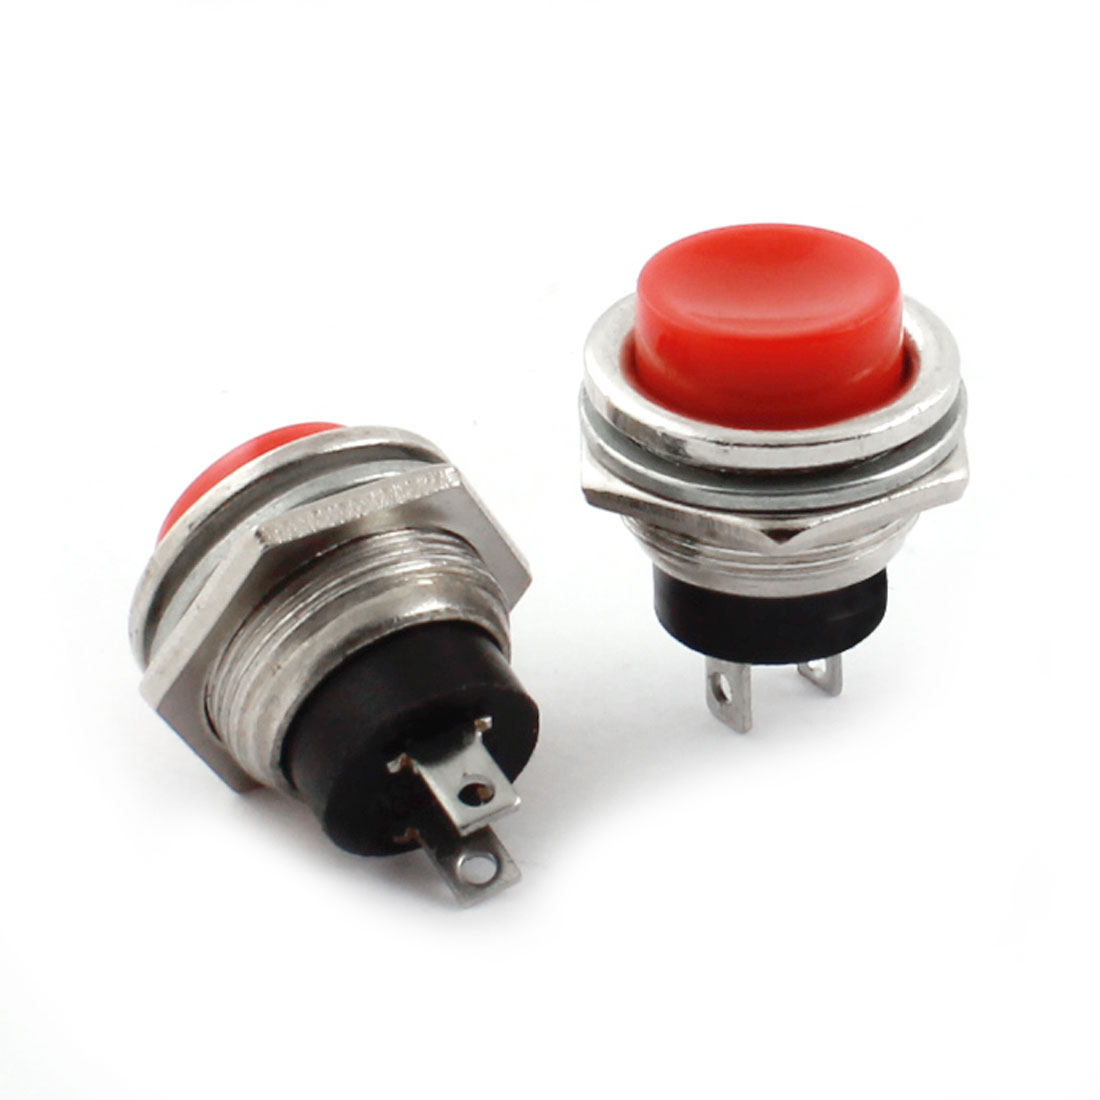 2Pcs Red Cap 16mm Thread Mounting Black SPST Momentary Push Button Switch AC125V 3A